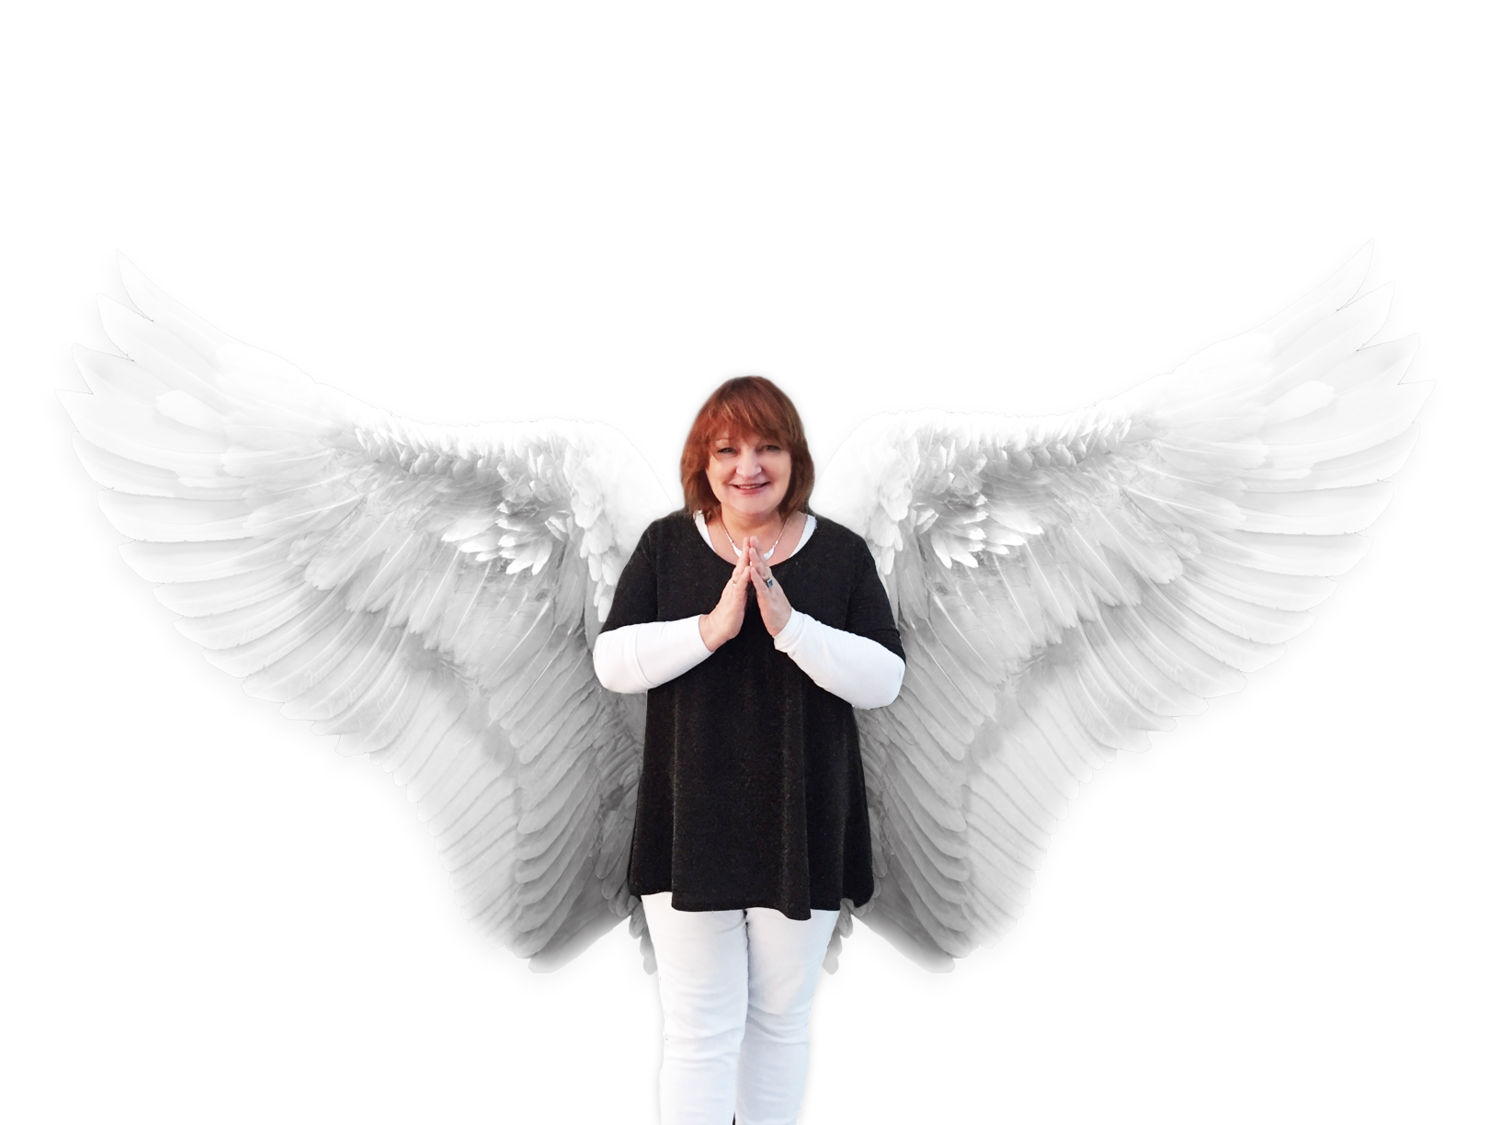 Png angels for cutting. How i met the